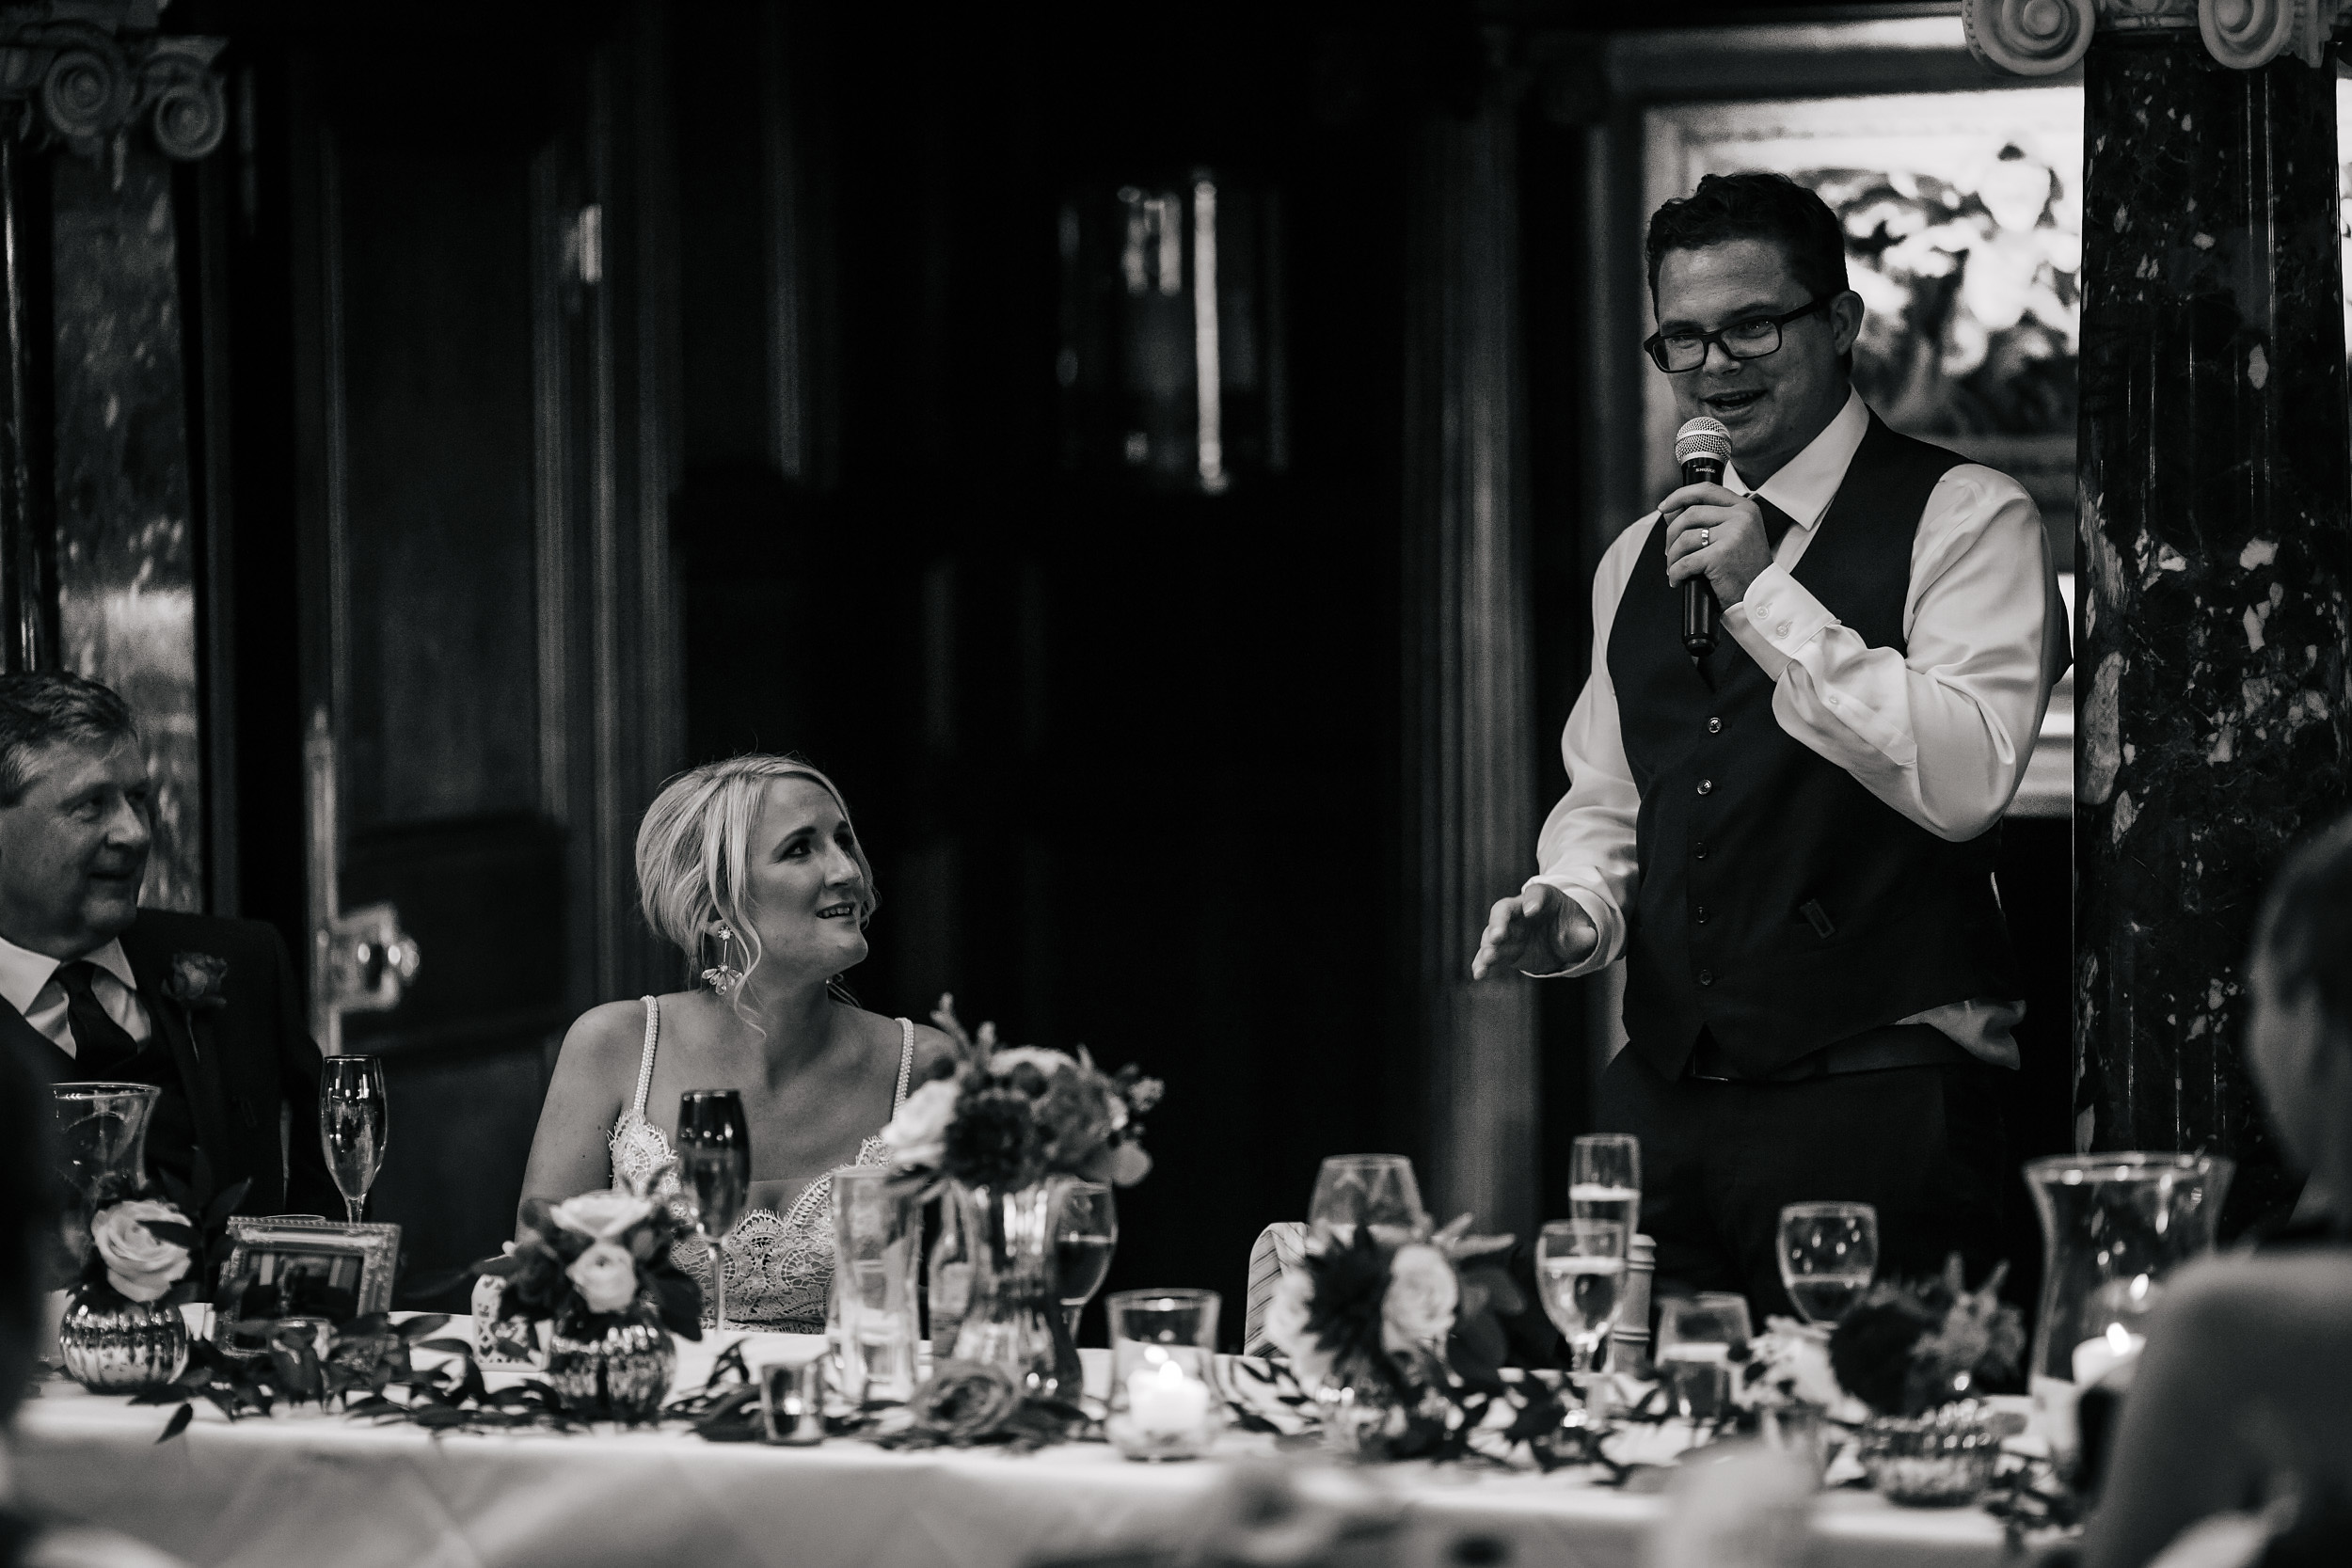 Grooms speech at his wedding at Thornton Manor Cheshire